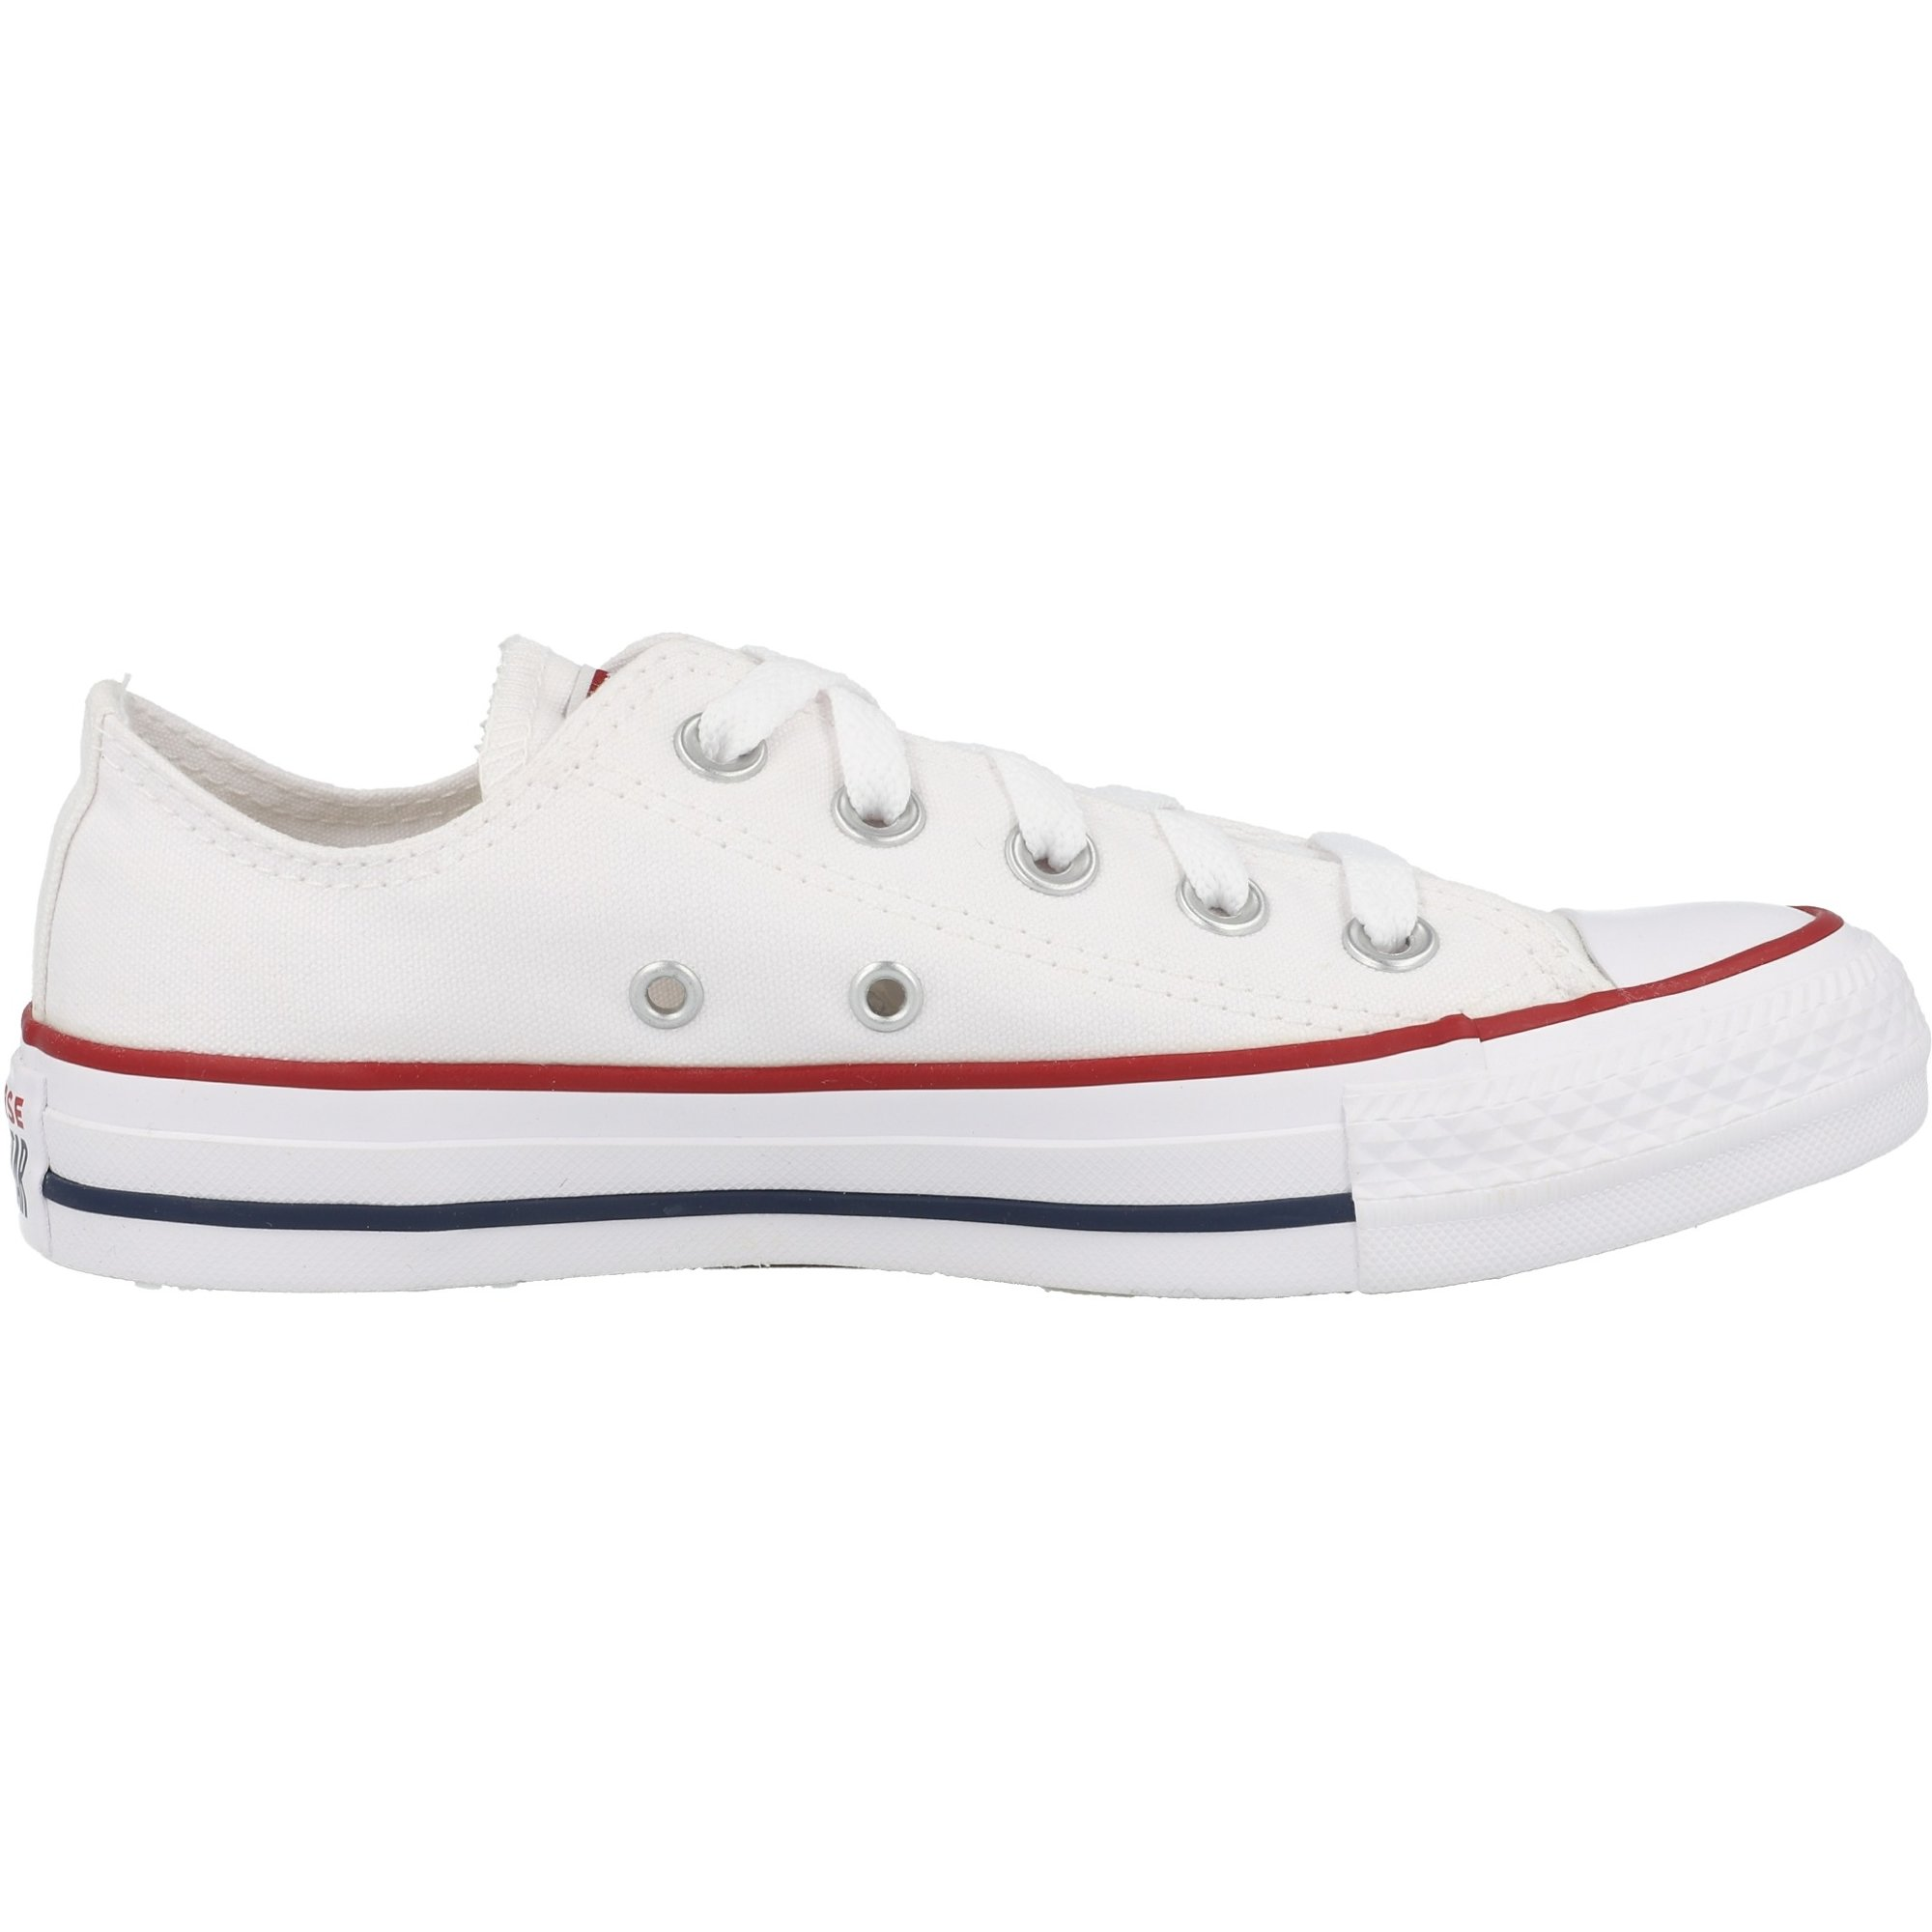 Converse Chuck Taylor All Star Ox Optical White Textile